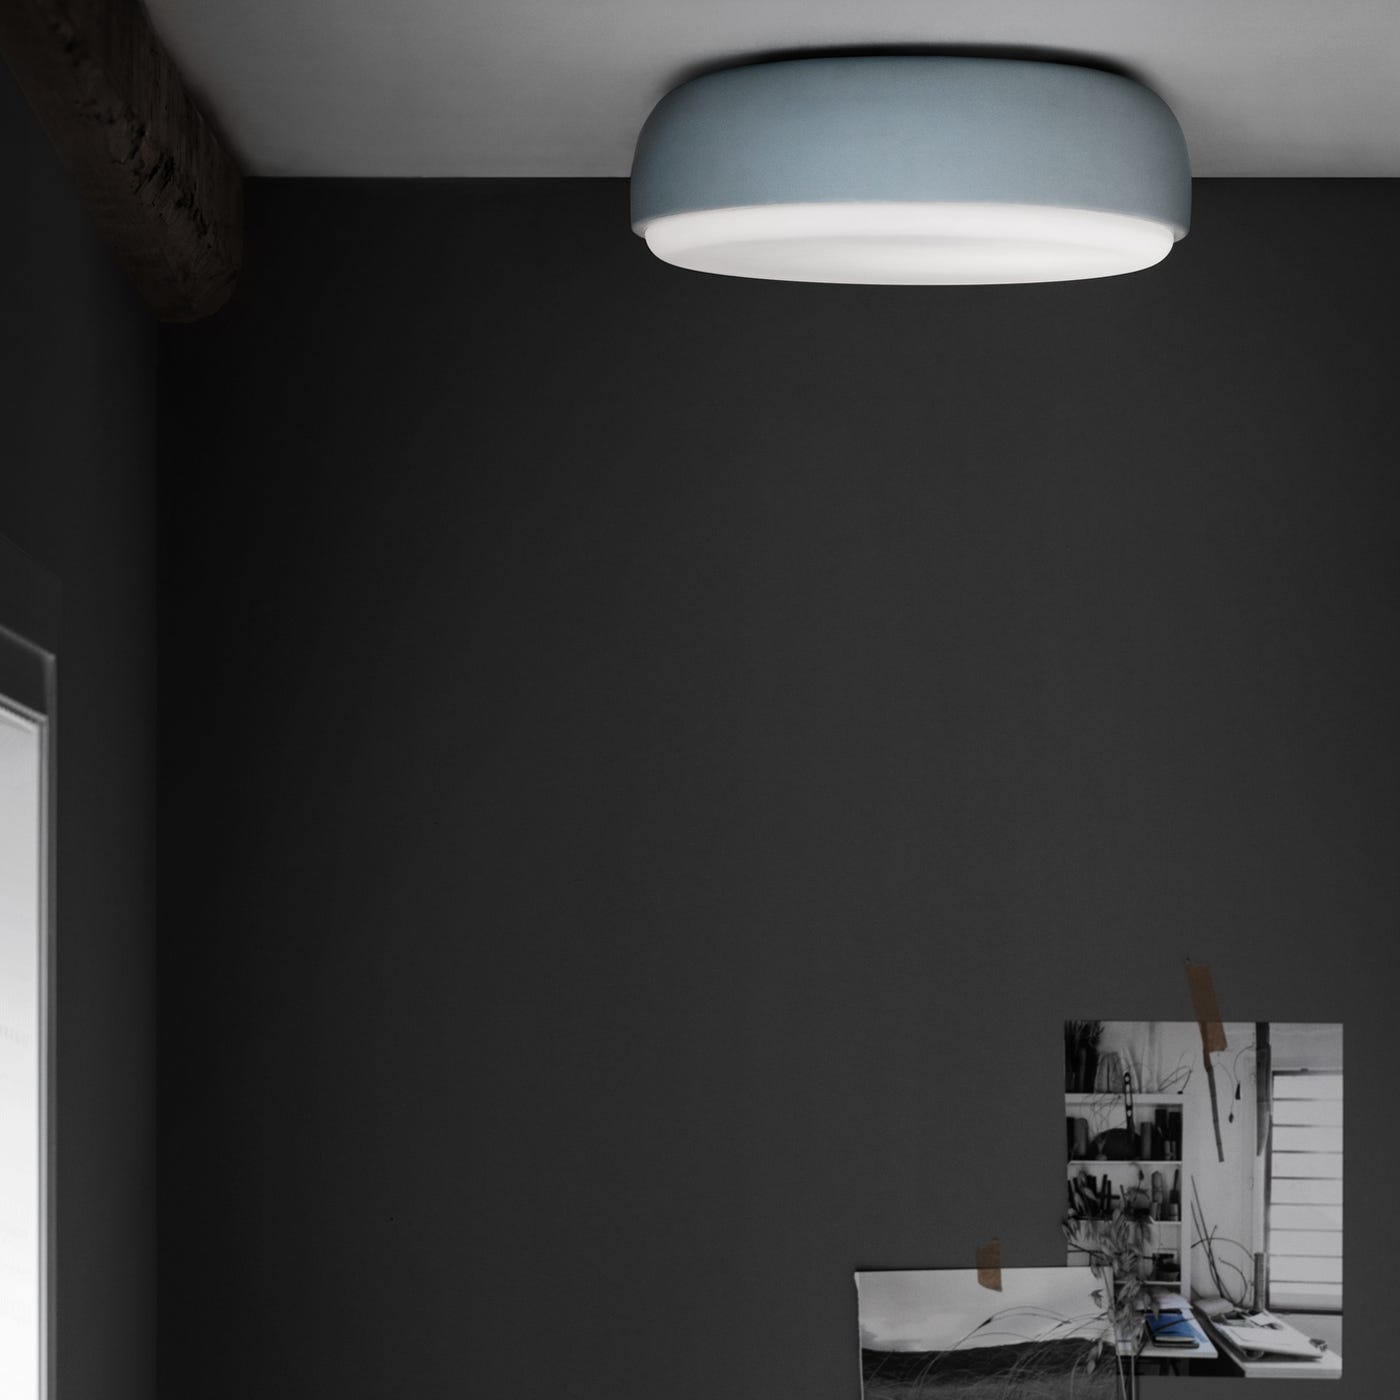 The Over Me light in dusty blue can be used a ceiling light.